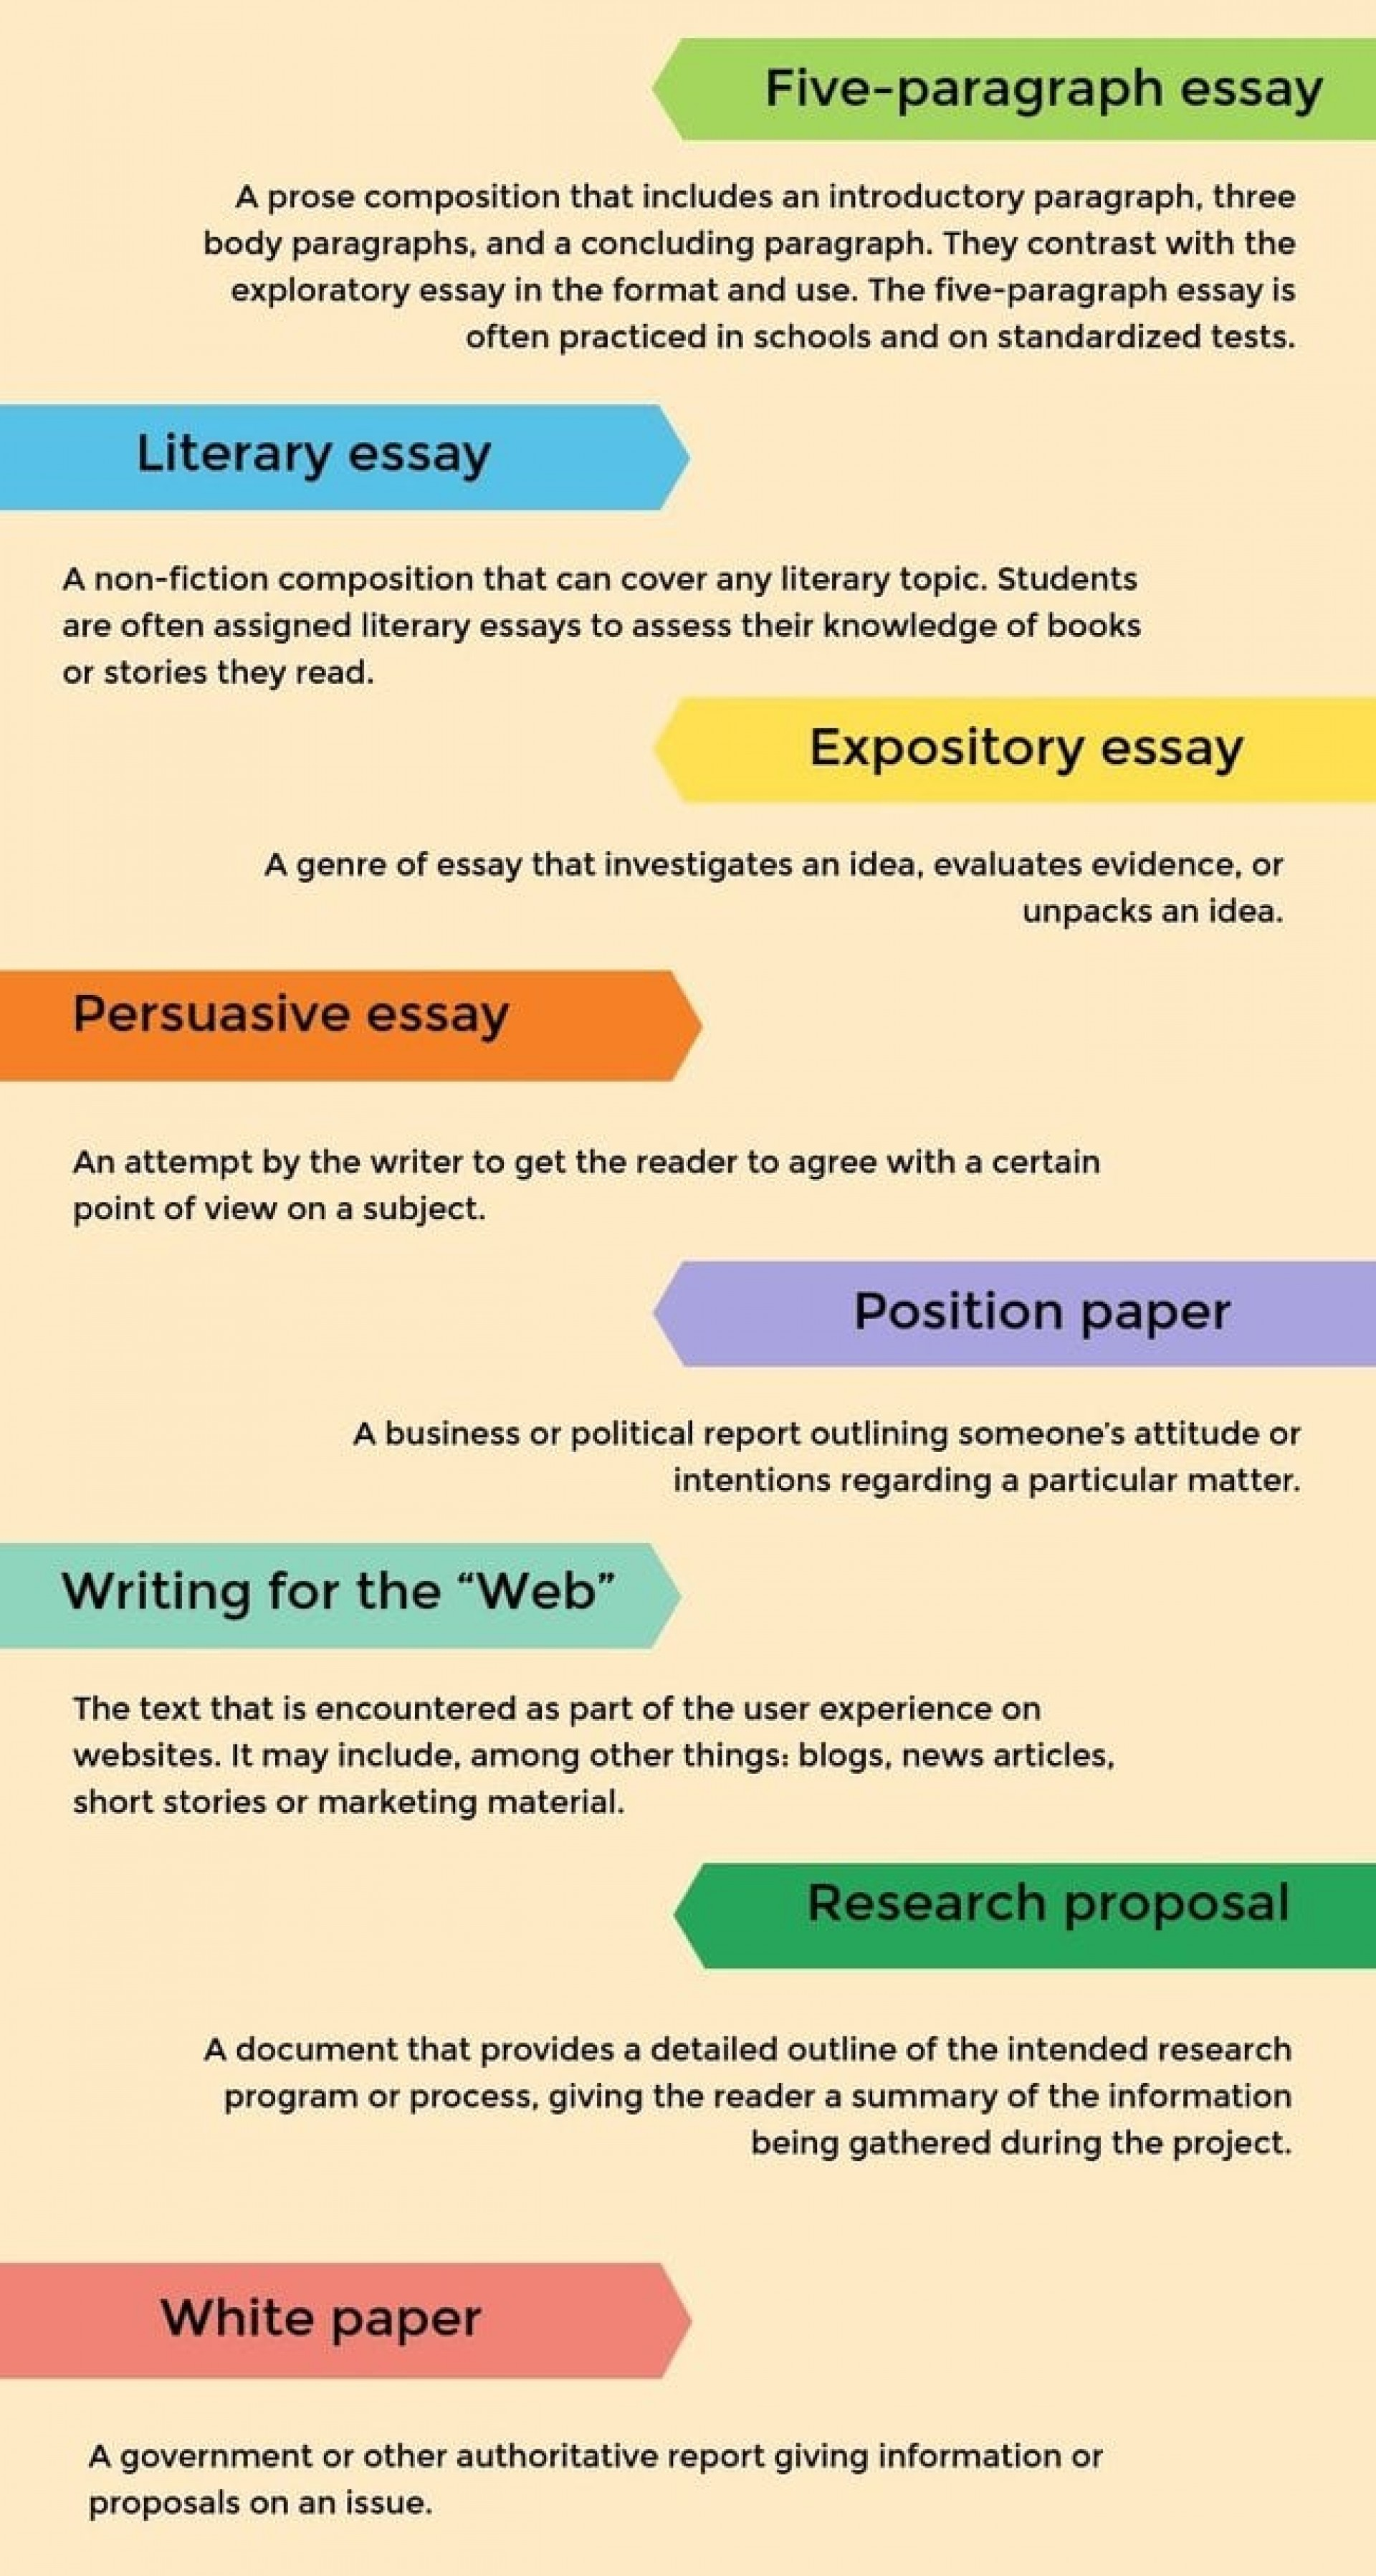 011 Oz Types Of Essays Essay Example Paragraph Best 5 Topics 7th Grade For Elementary Students Five List 1920